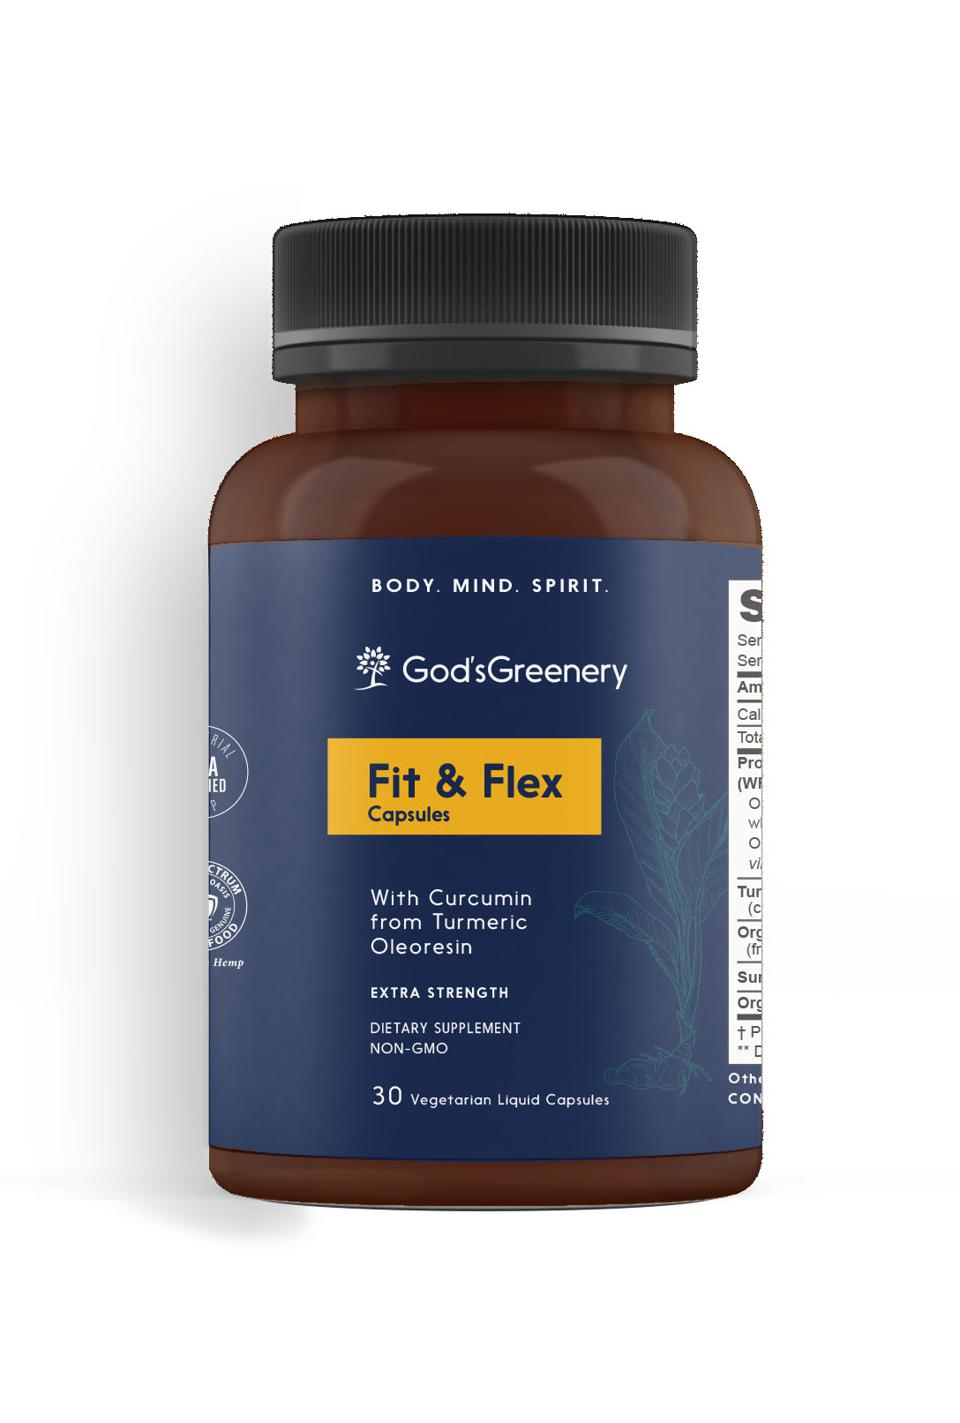 A bottle of Fit & Flex capsules by God's Greenery is pictured on a white background.